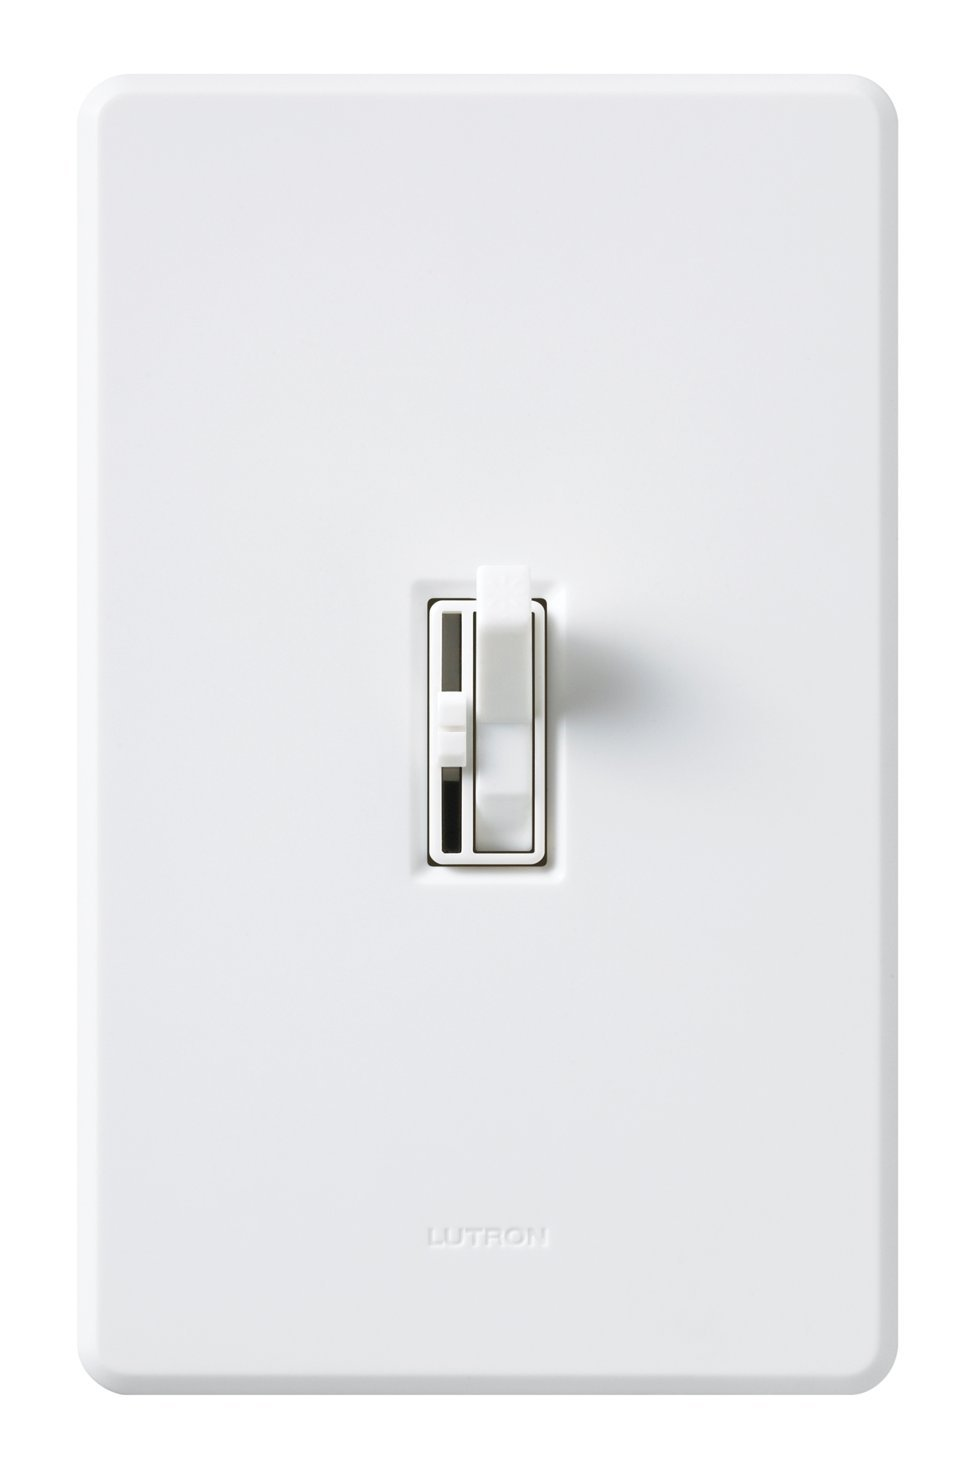 Lutron Tgfsq Fh Wh Toggler Fan Speed Control White Home 3 Way Light Switch Cover Improvement